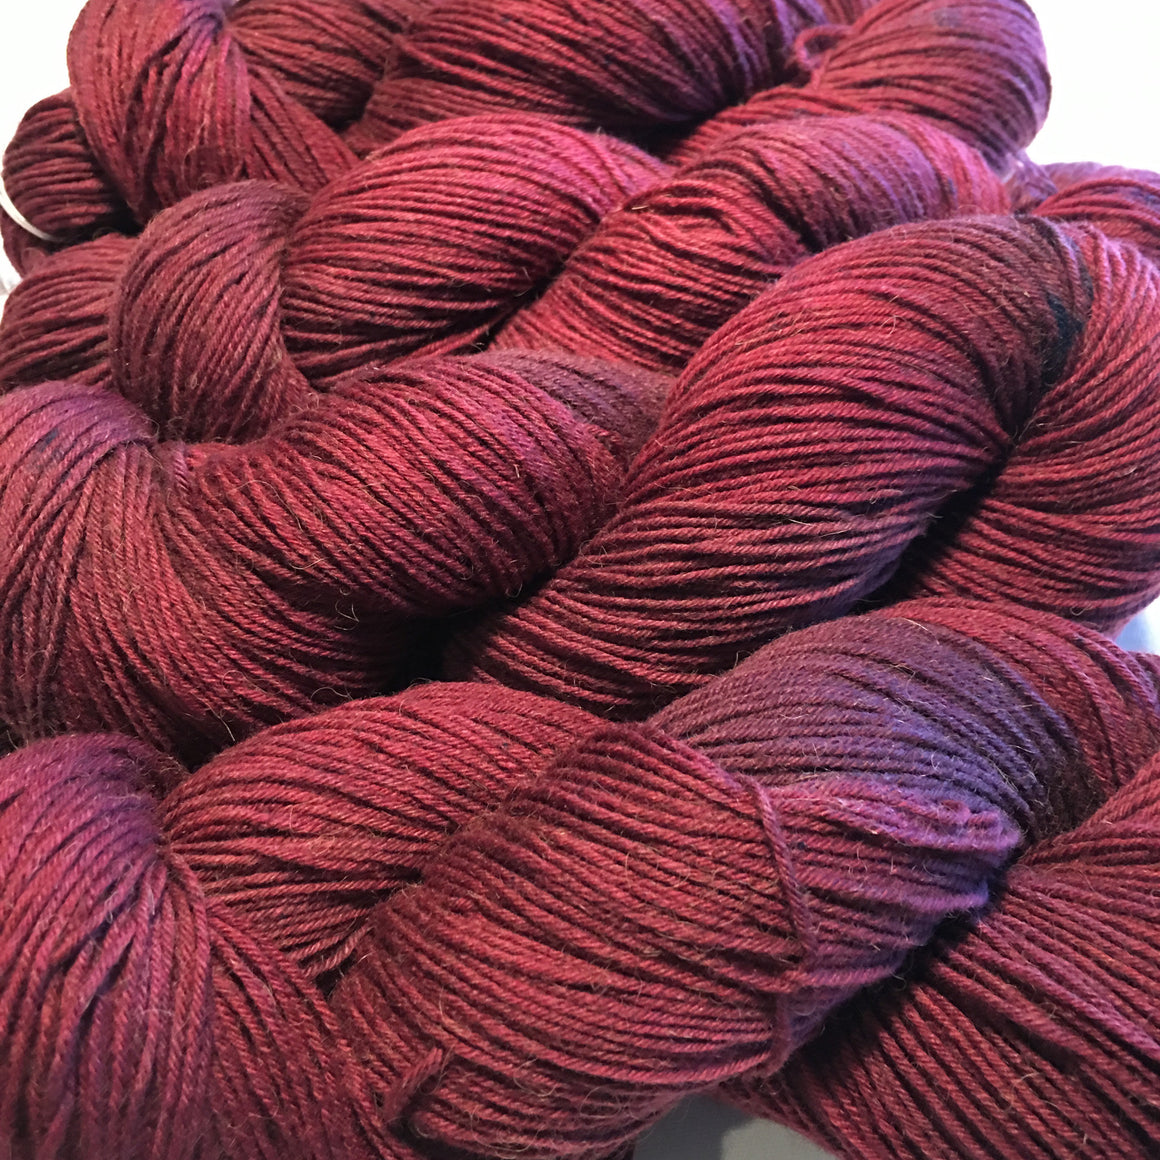 """Red Cliffs"" is a red toned blend in fingering weight bison blend yarn"